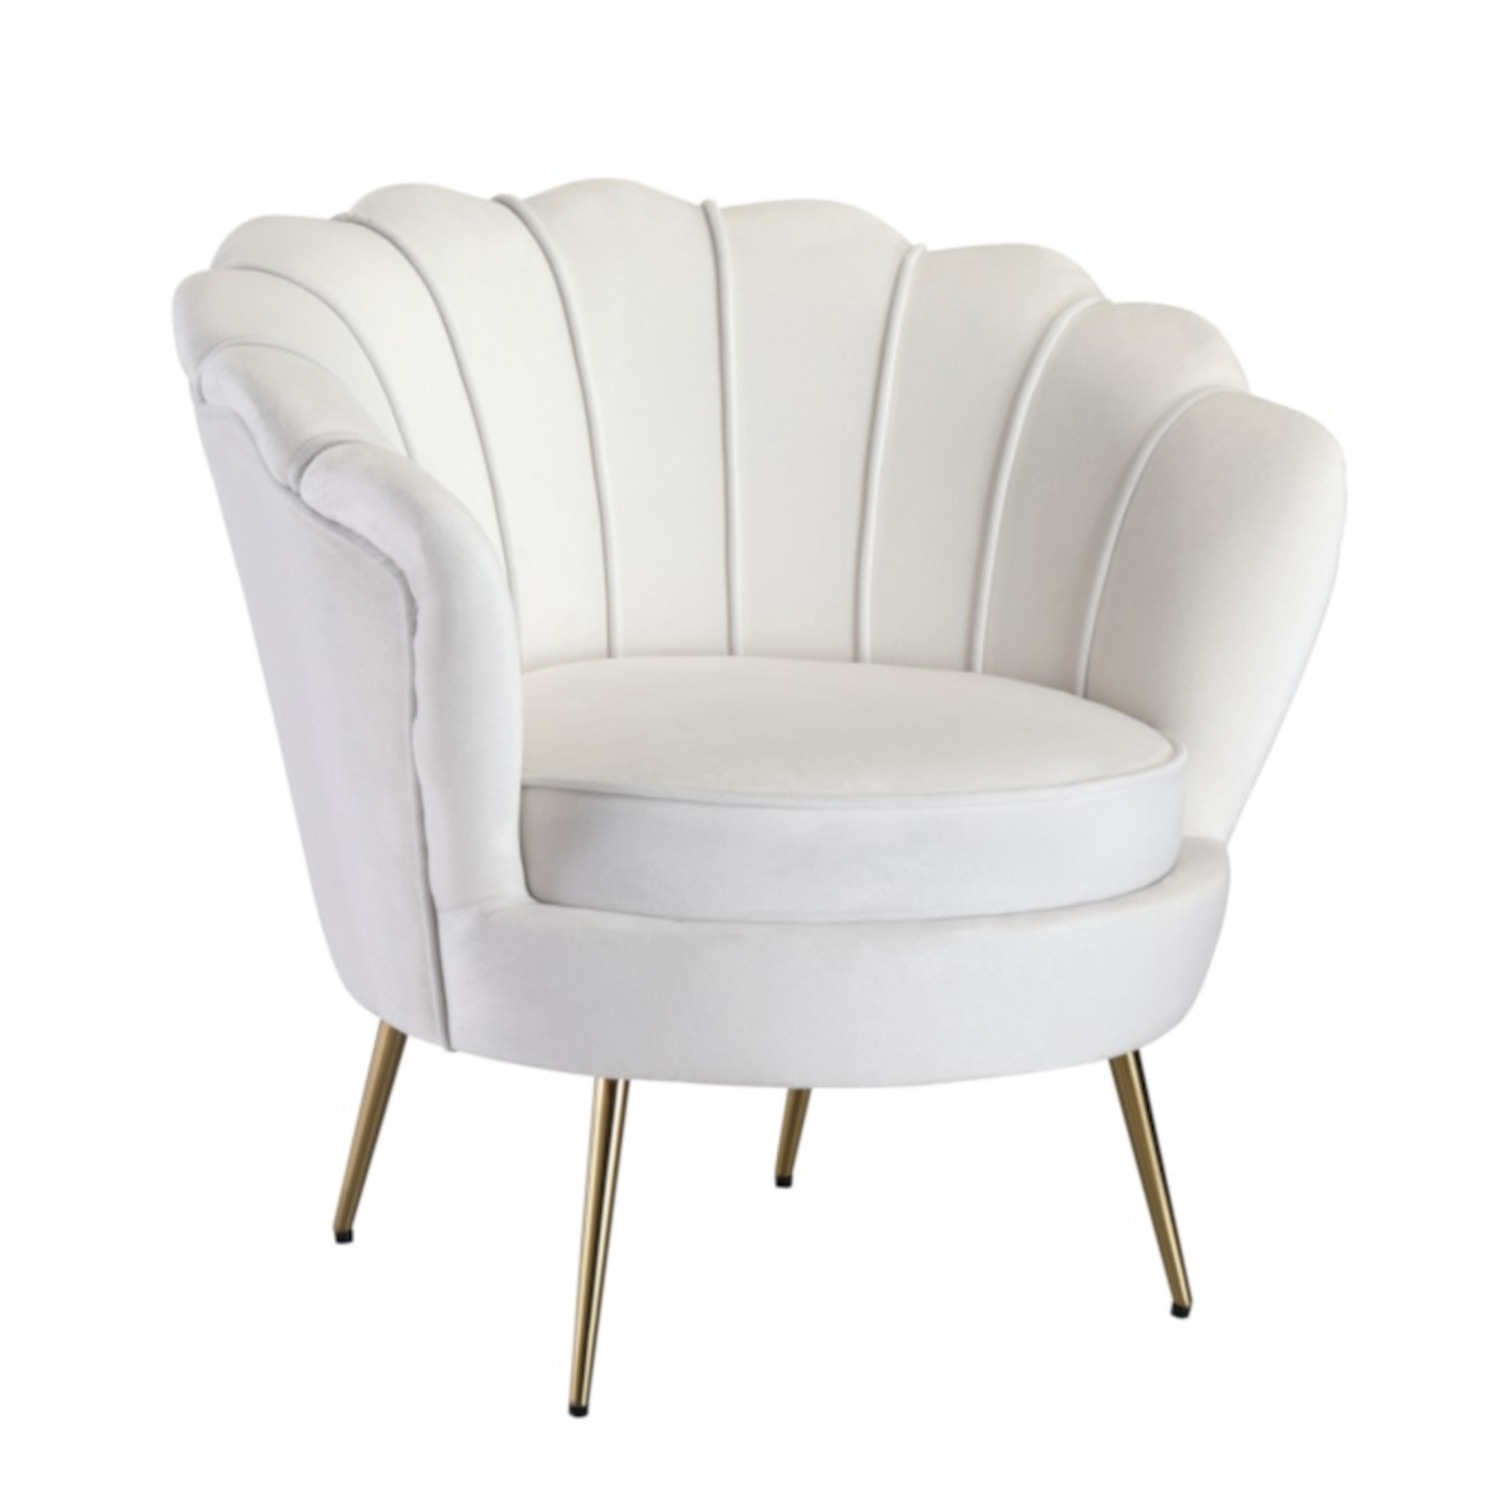 Modern Bridal Chair In White Suede Fabric - image-0